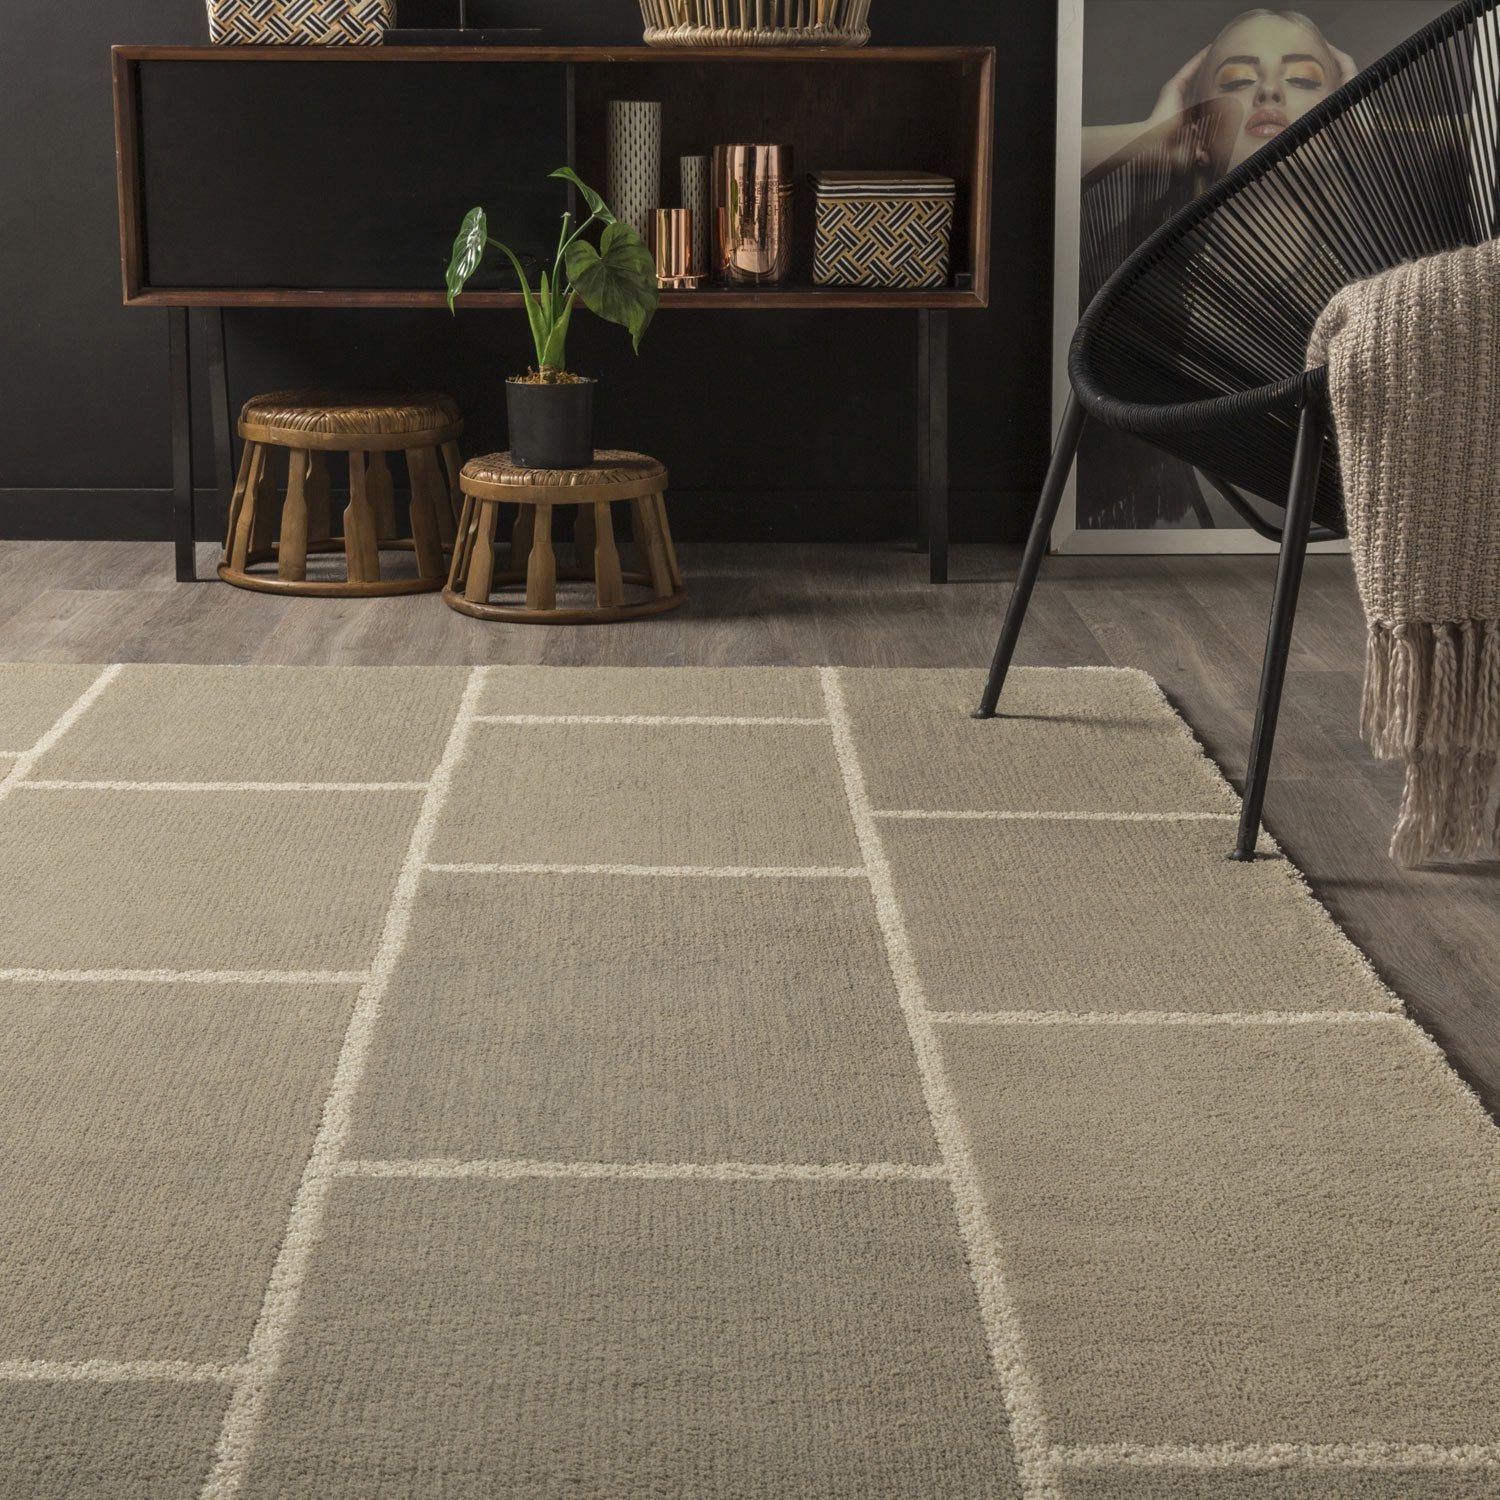 Tapis Taupe Cosy Design X Cm Leroy Merlin